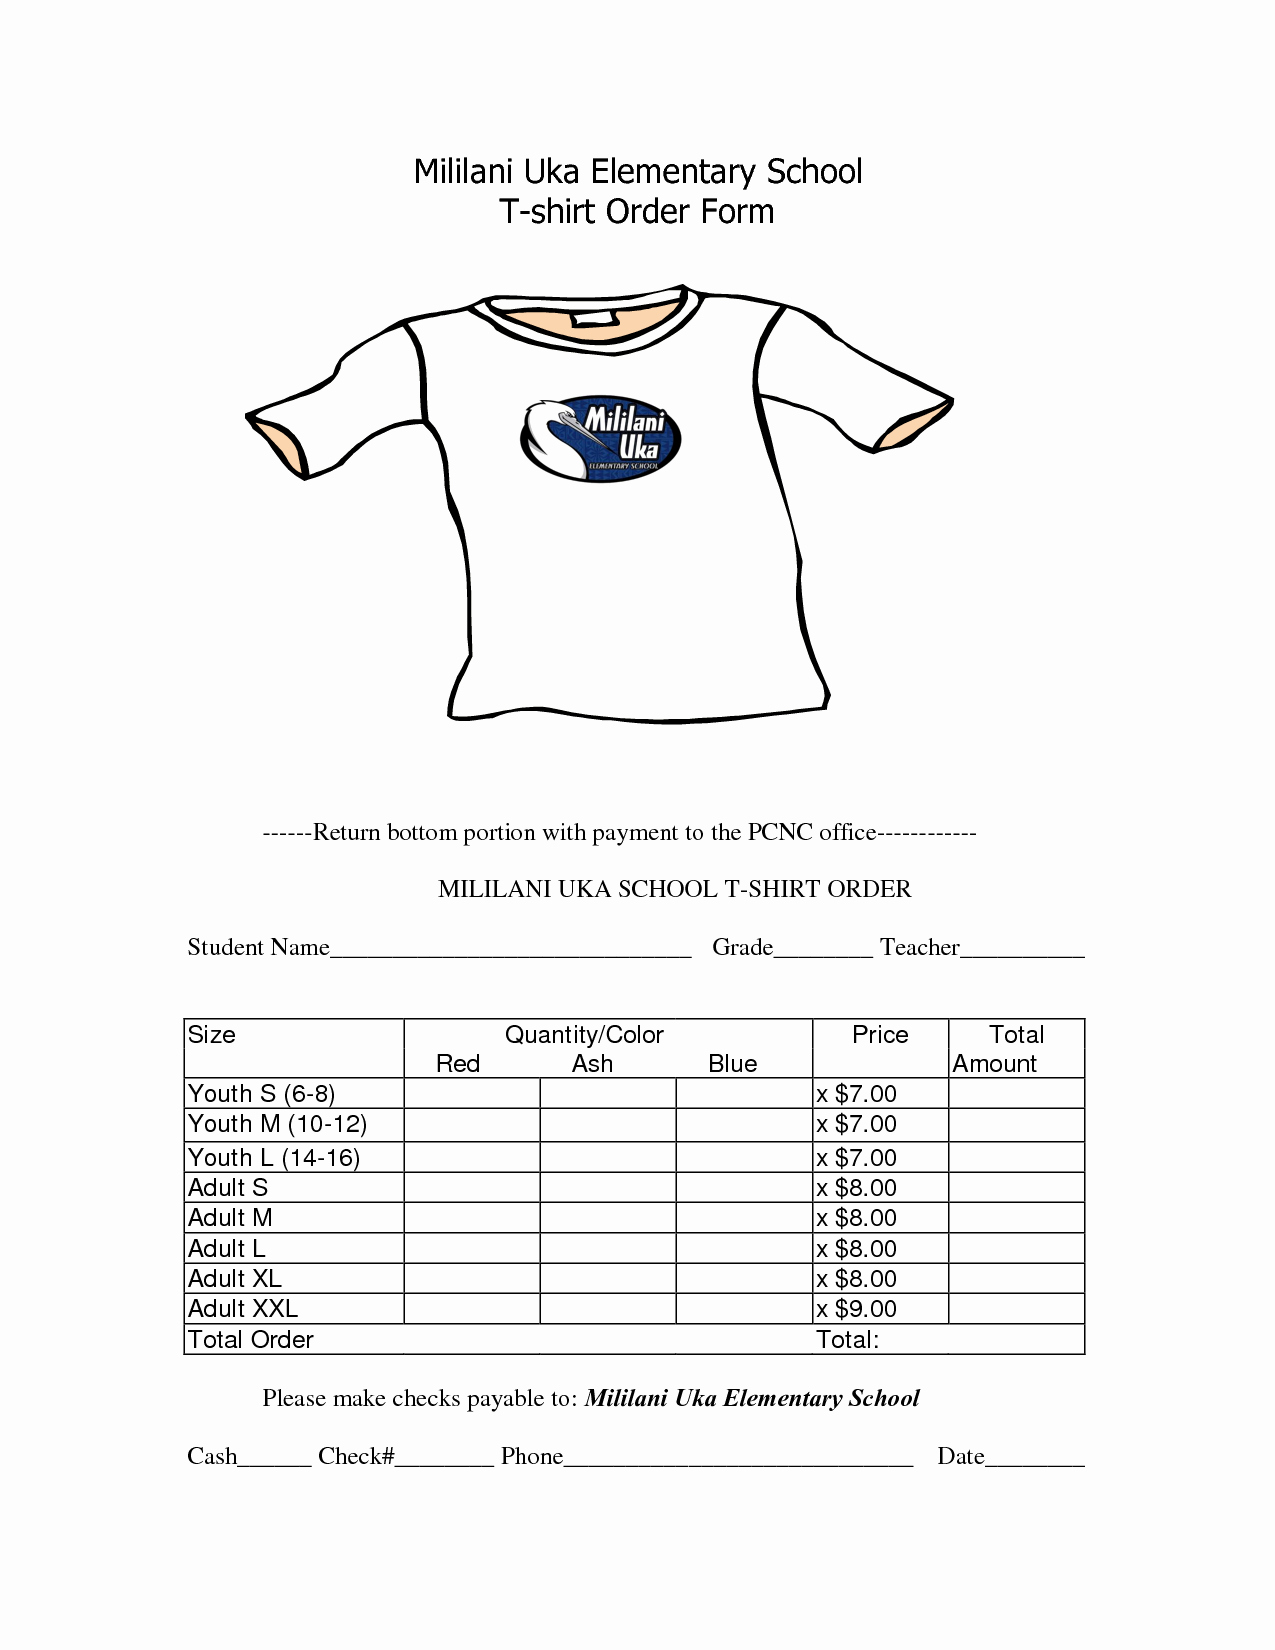 Tshirt order form Template Awesome School T Shirt order form Template Clothes